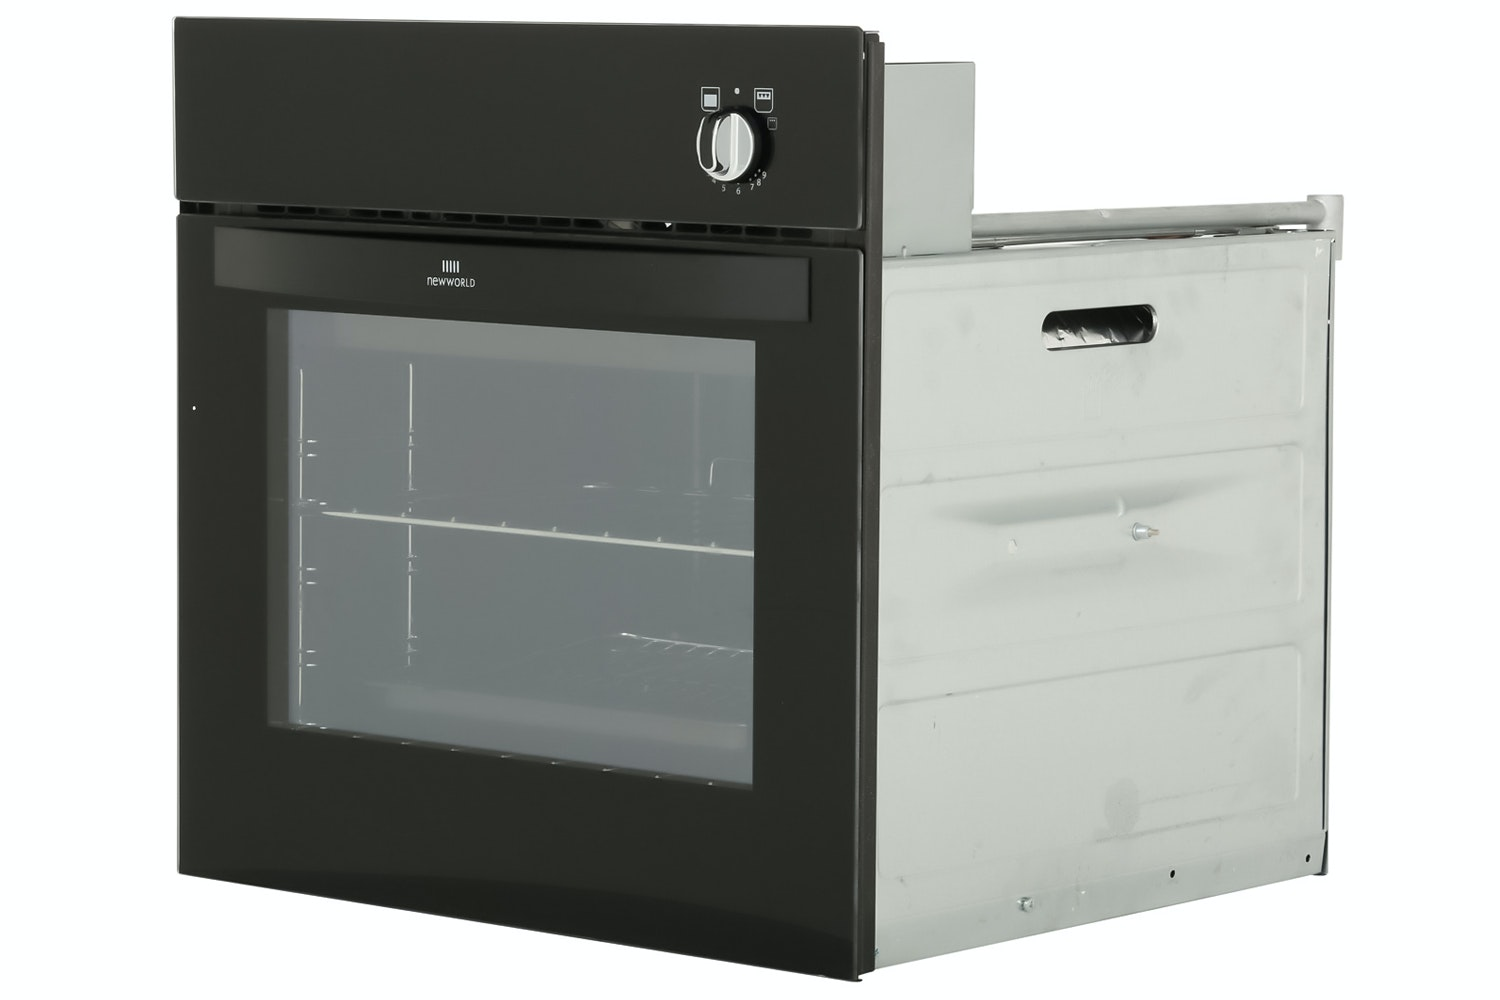 New World Built-in Single Oven | NW601GBK